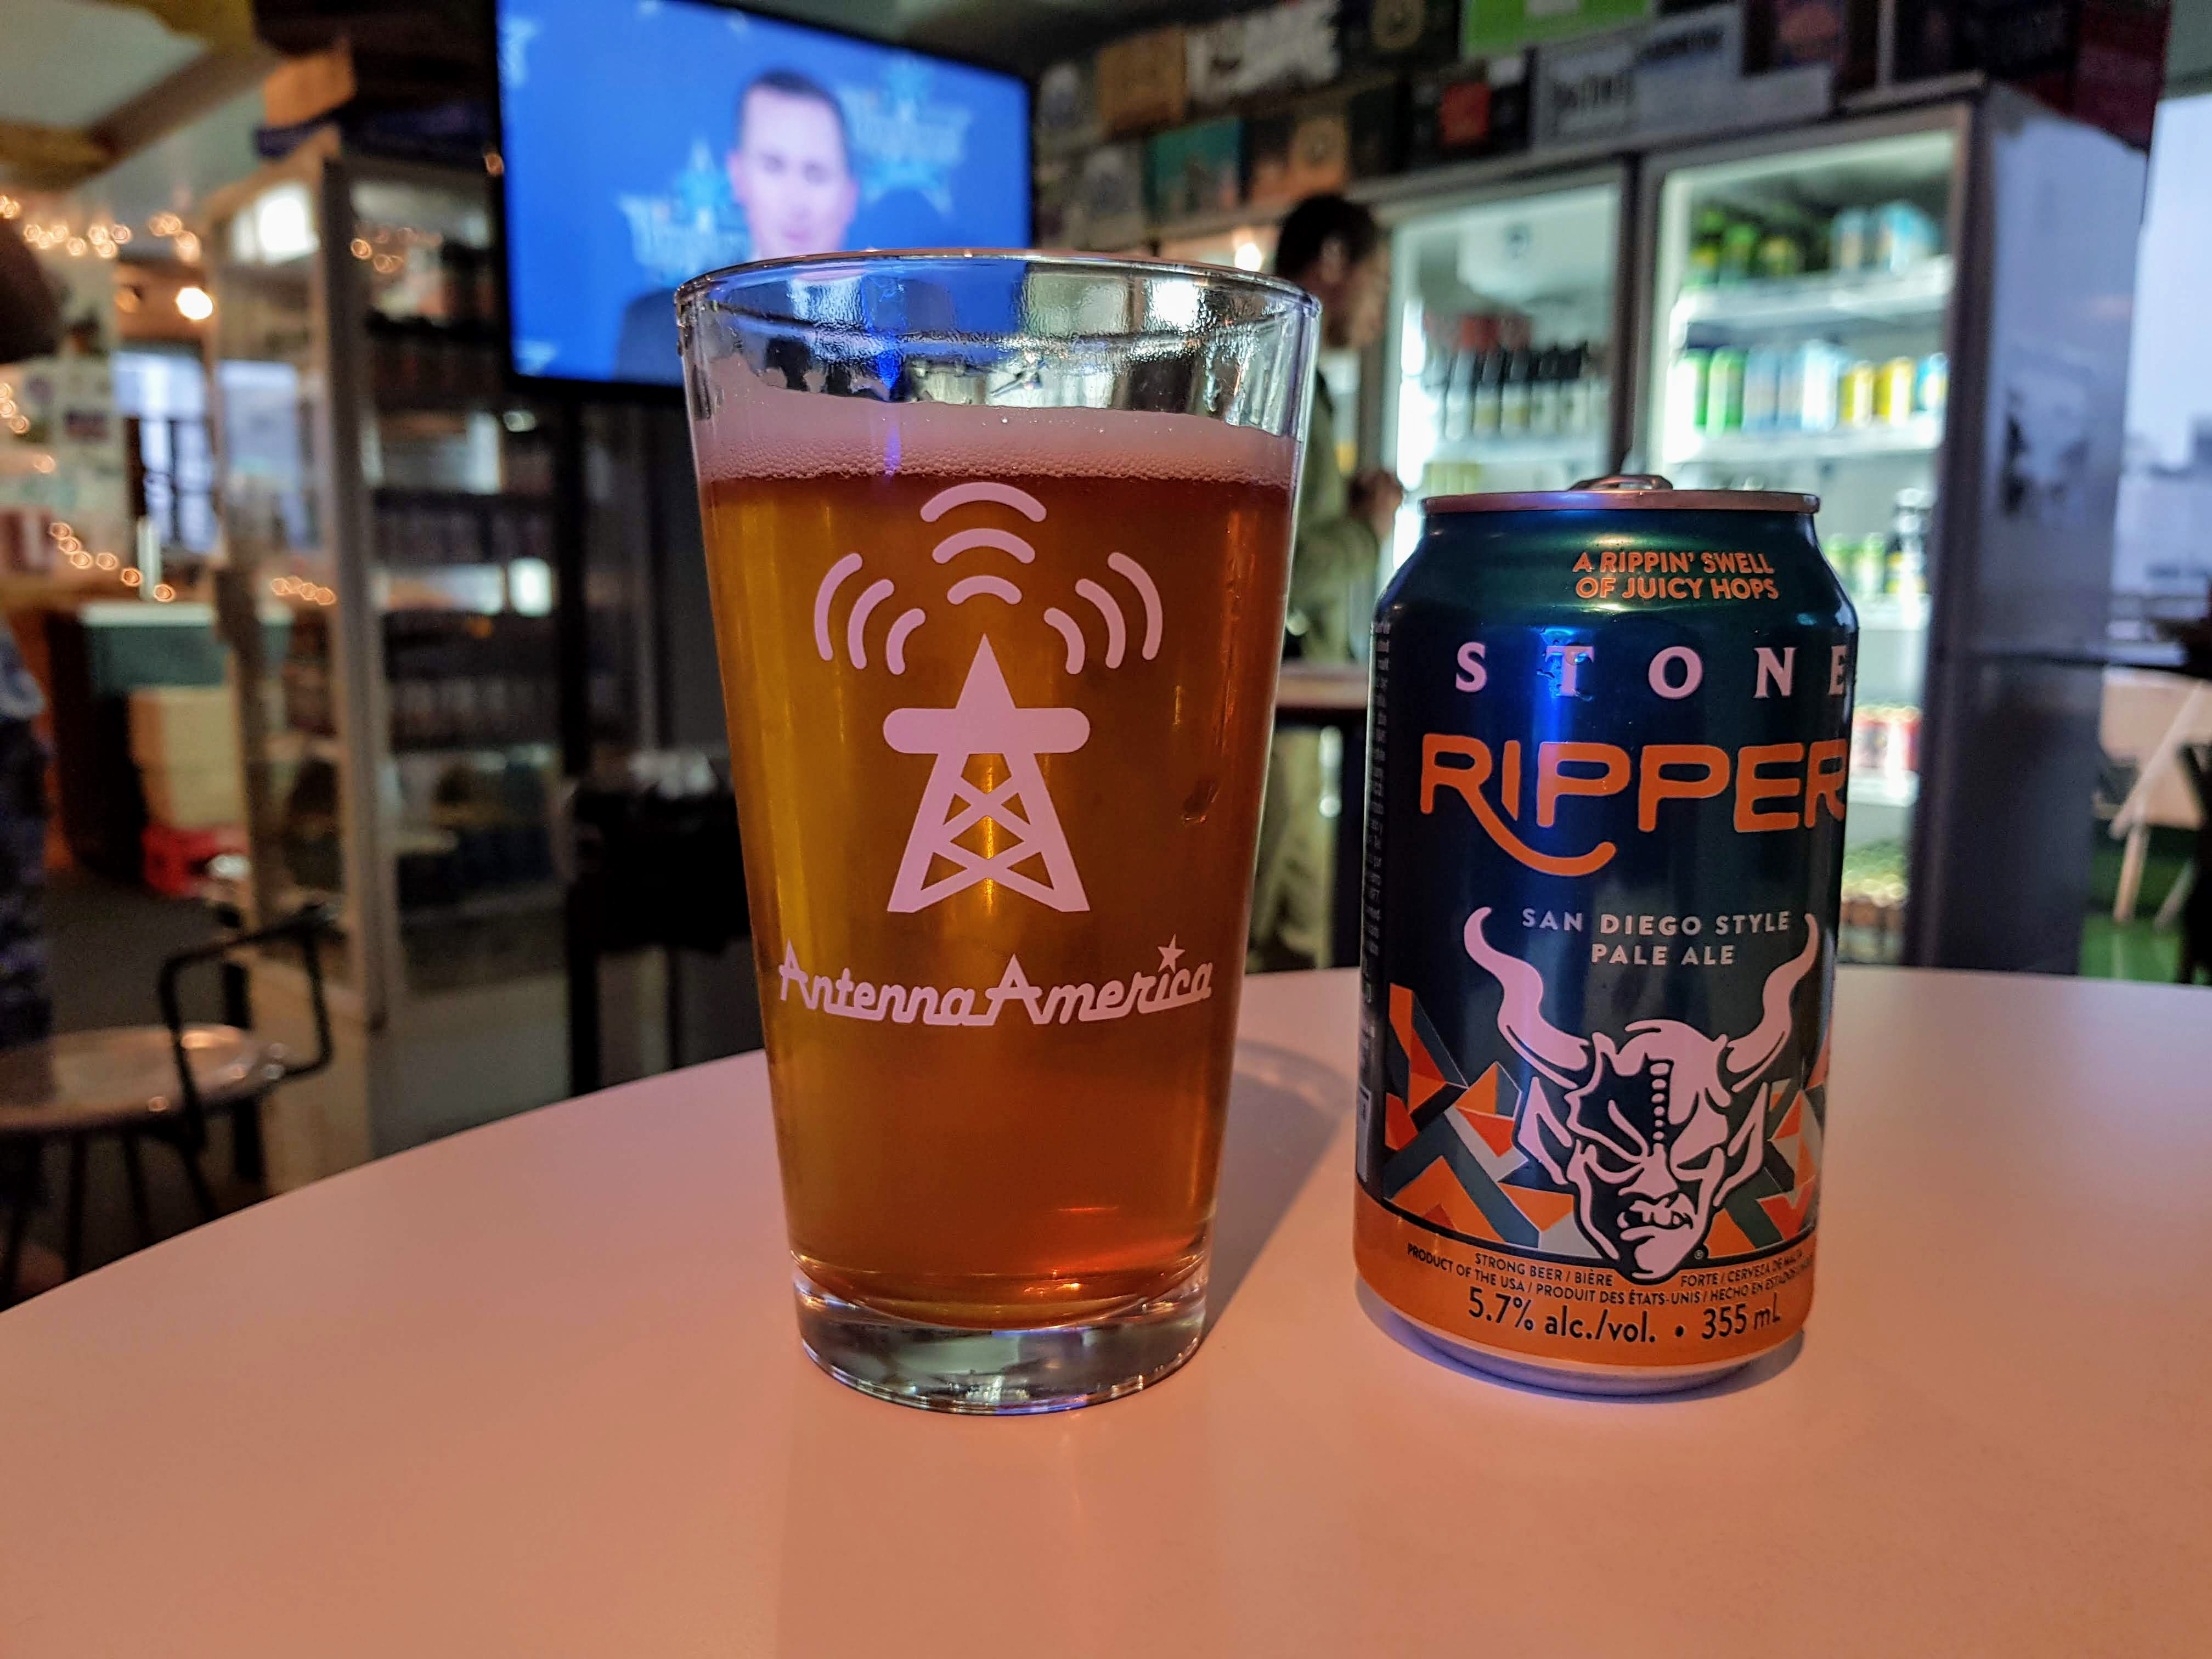 Antenna America beer